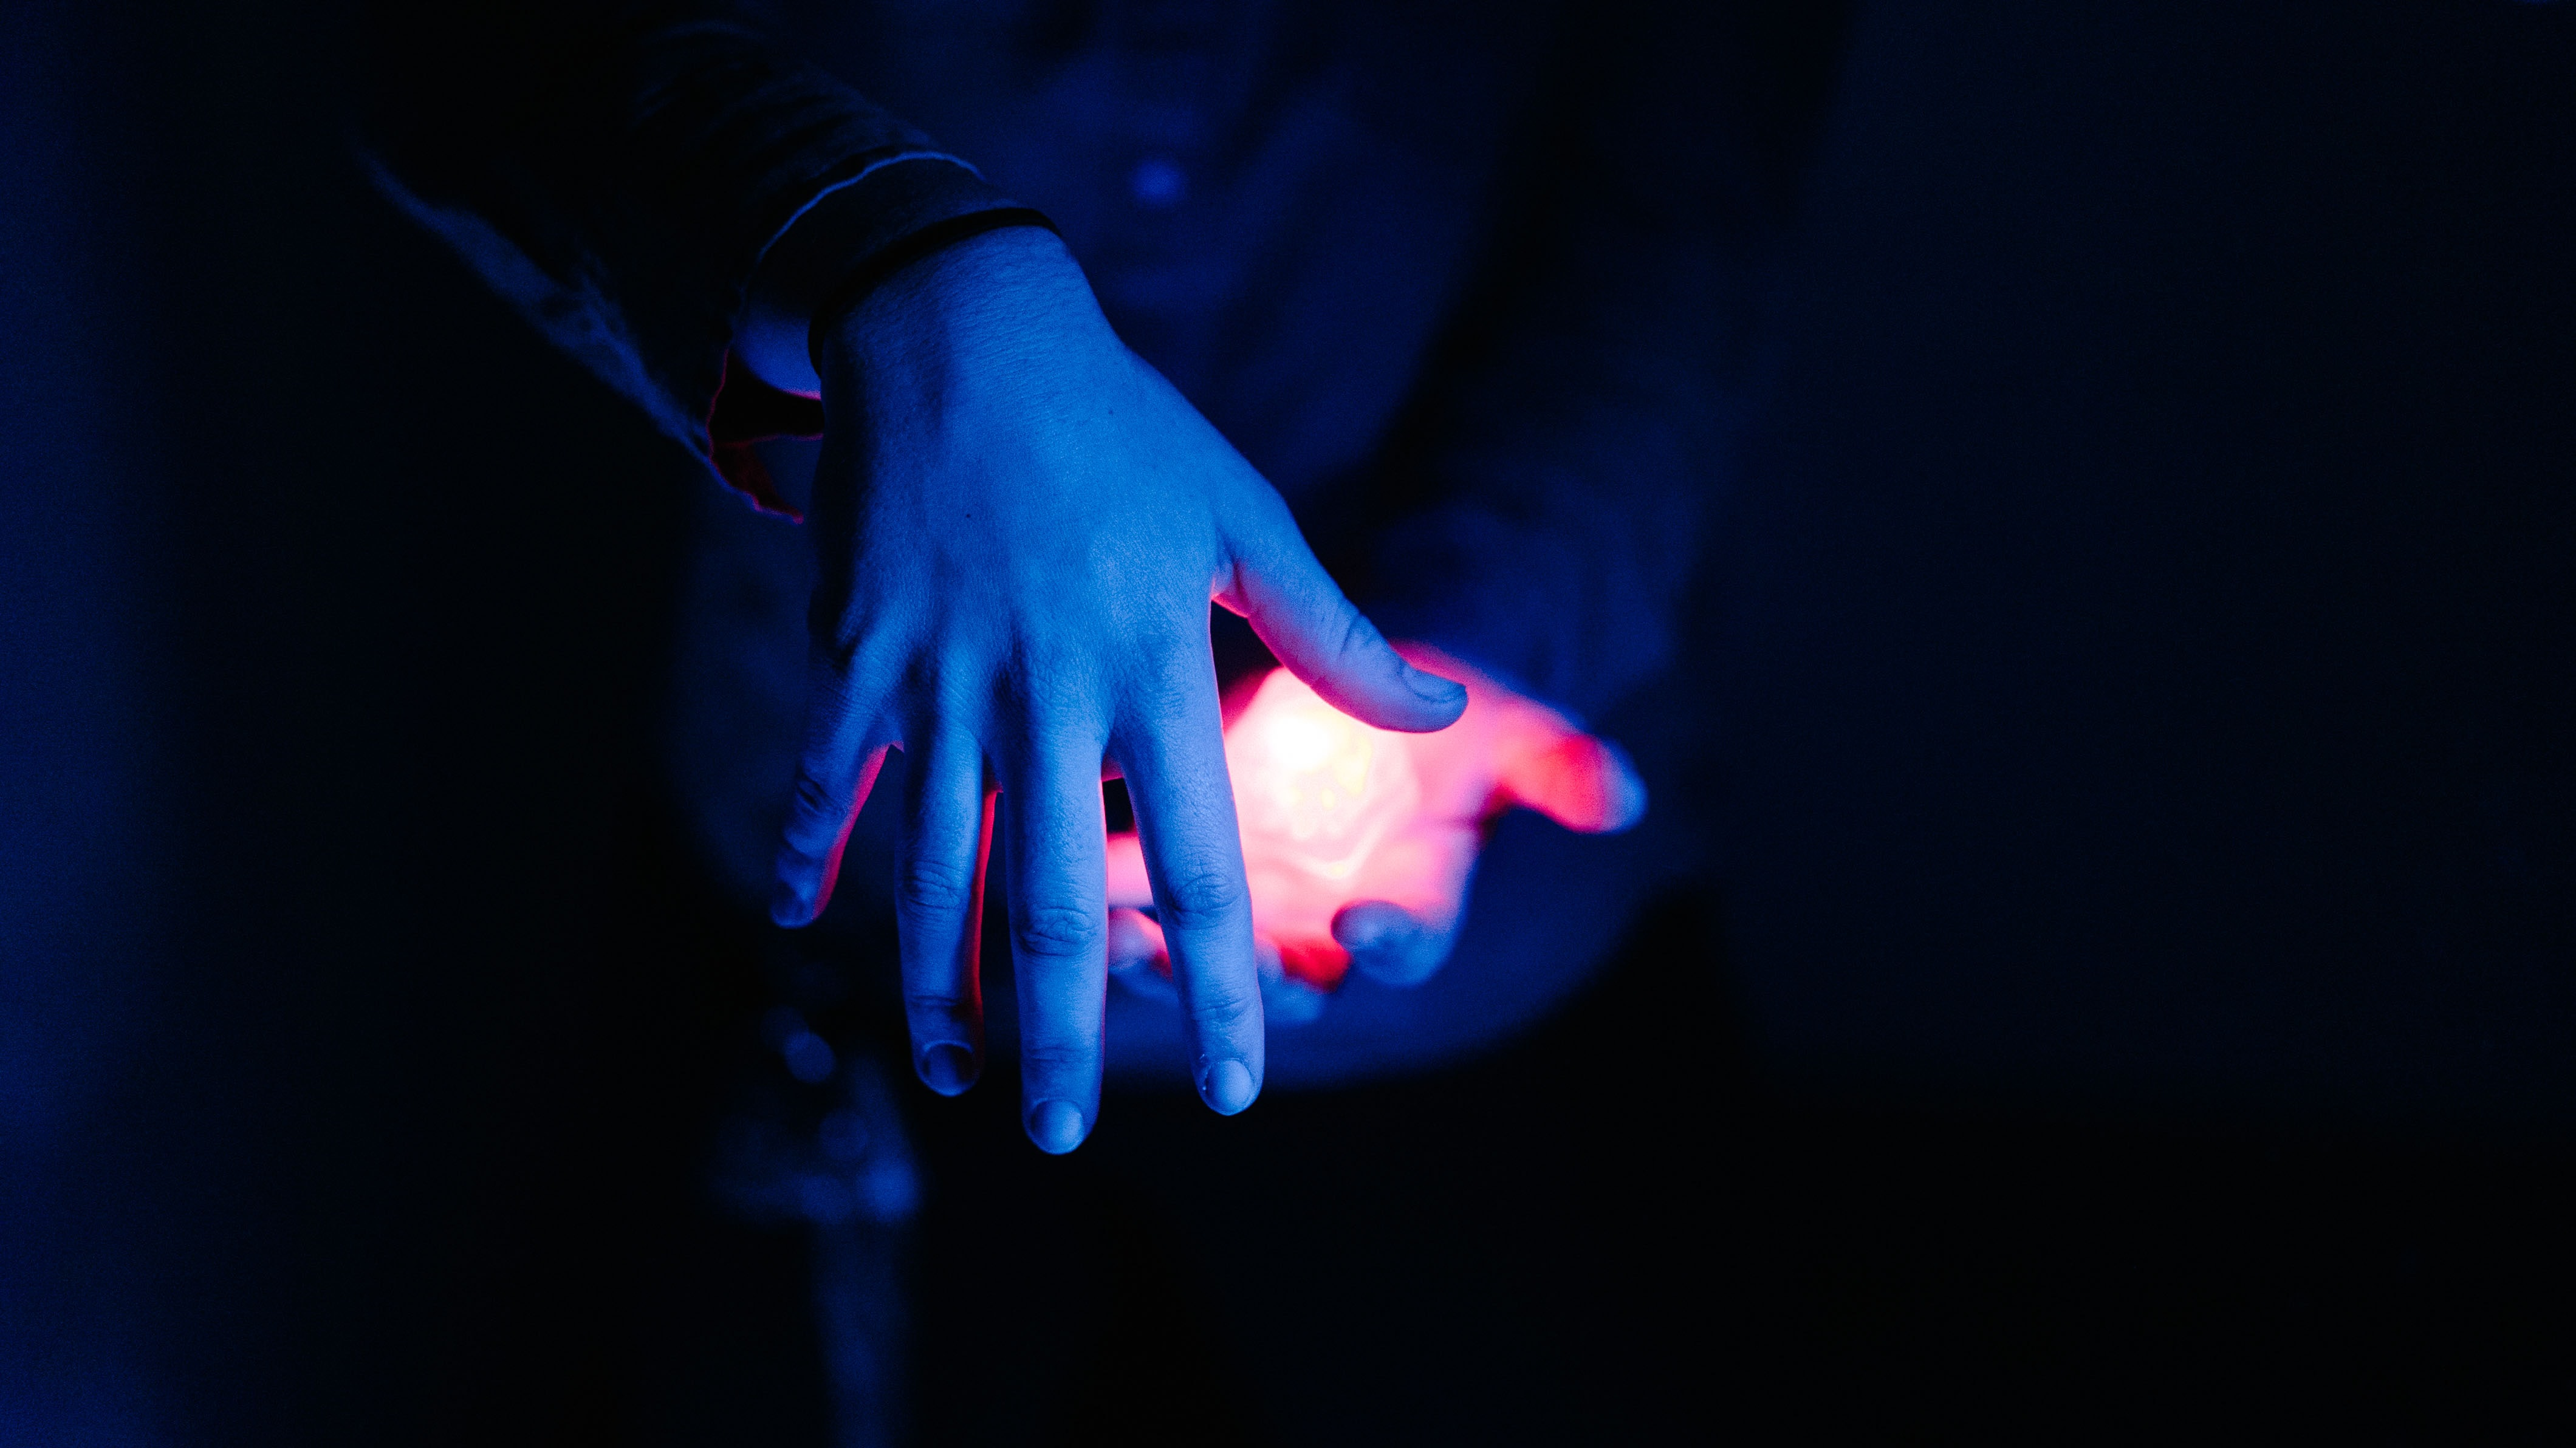 red light on human palm